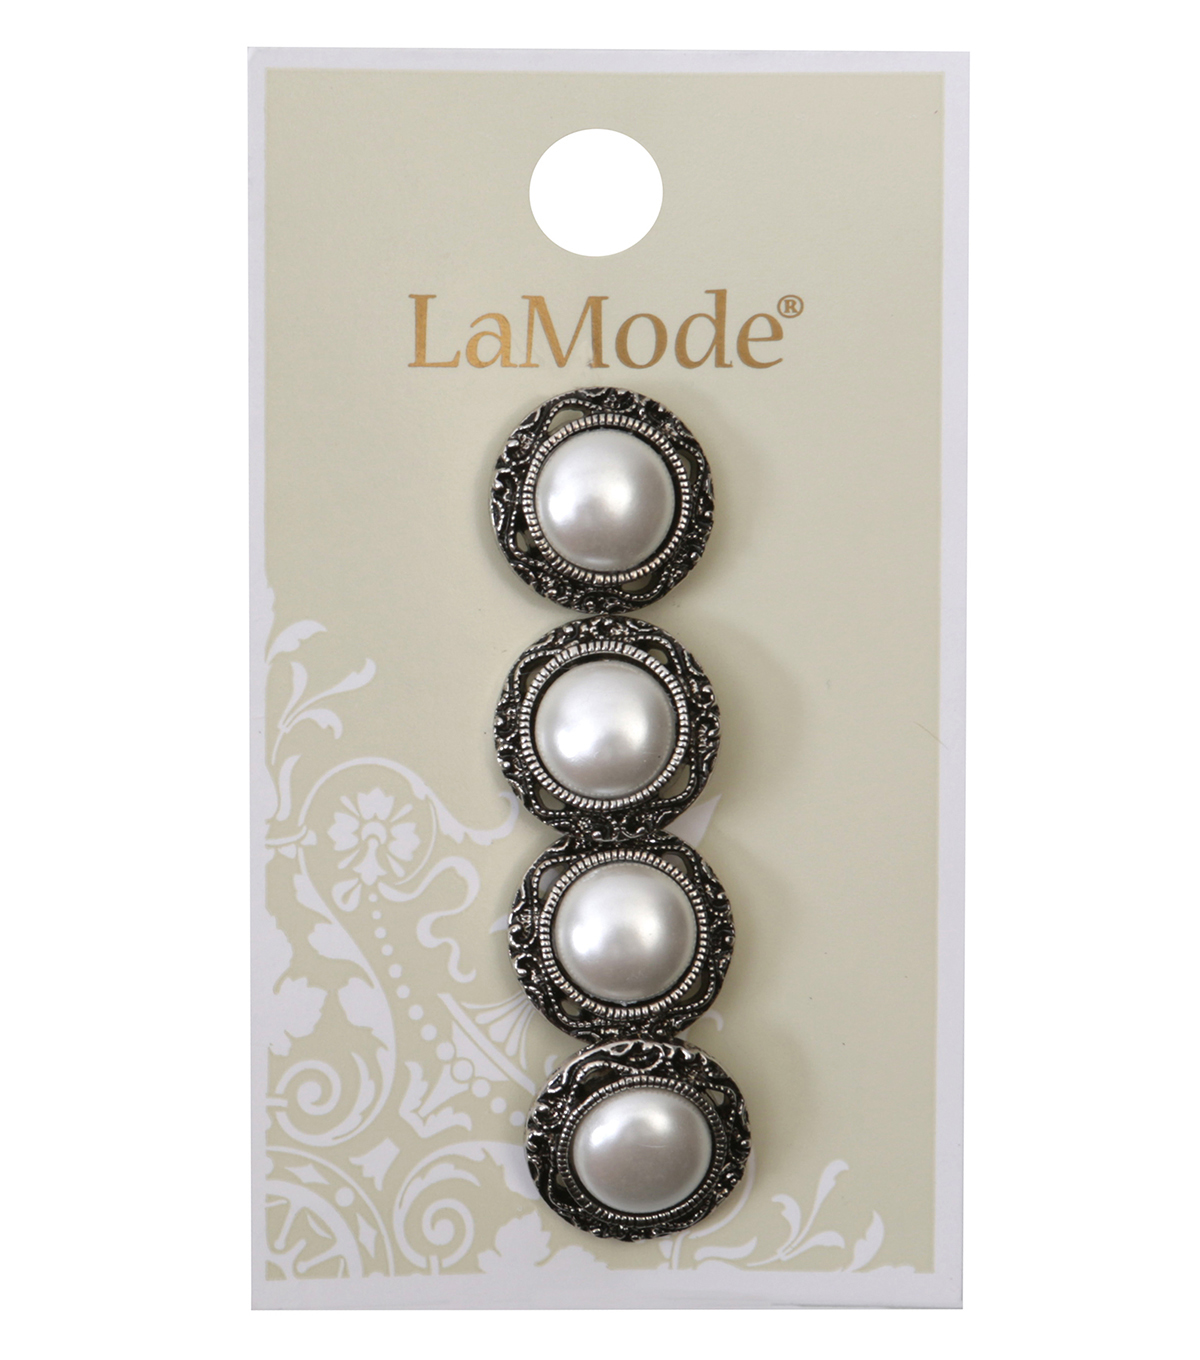 La Mode 4 pk 0.63\u0027\u0027 Silver Shank Buttons with White Pearl